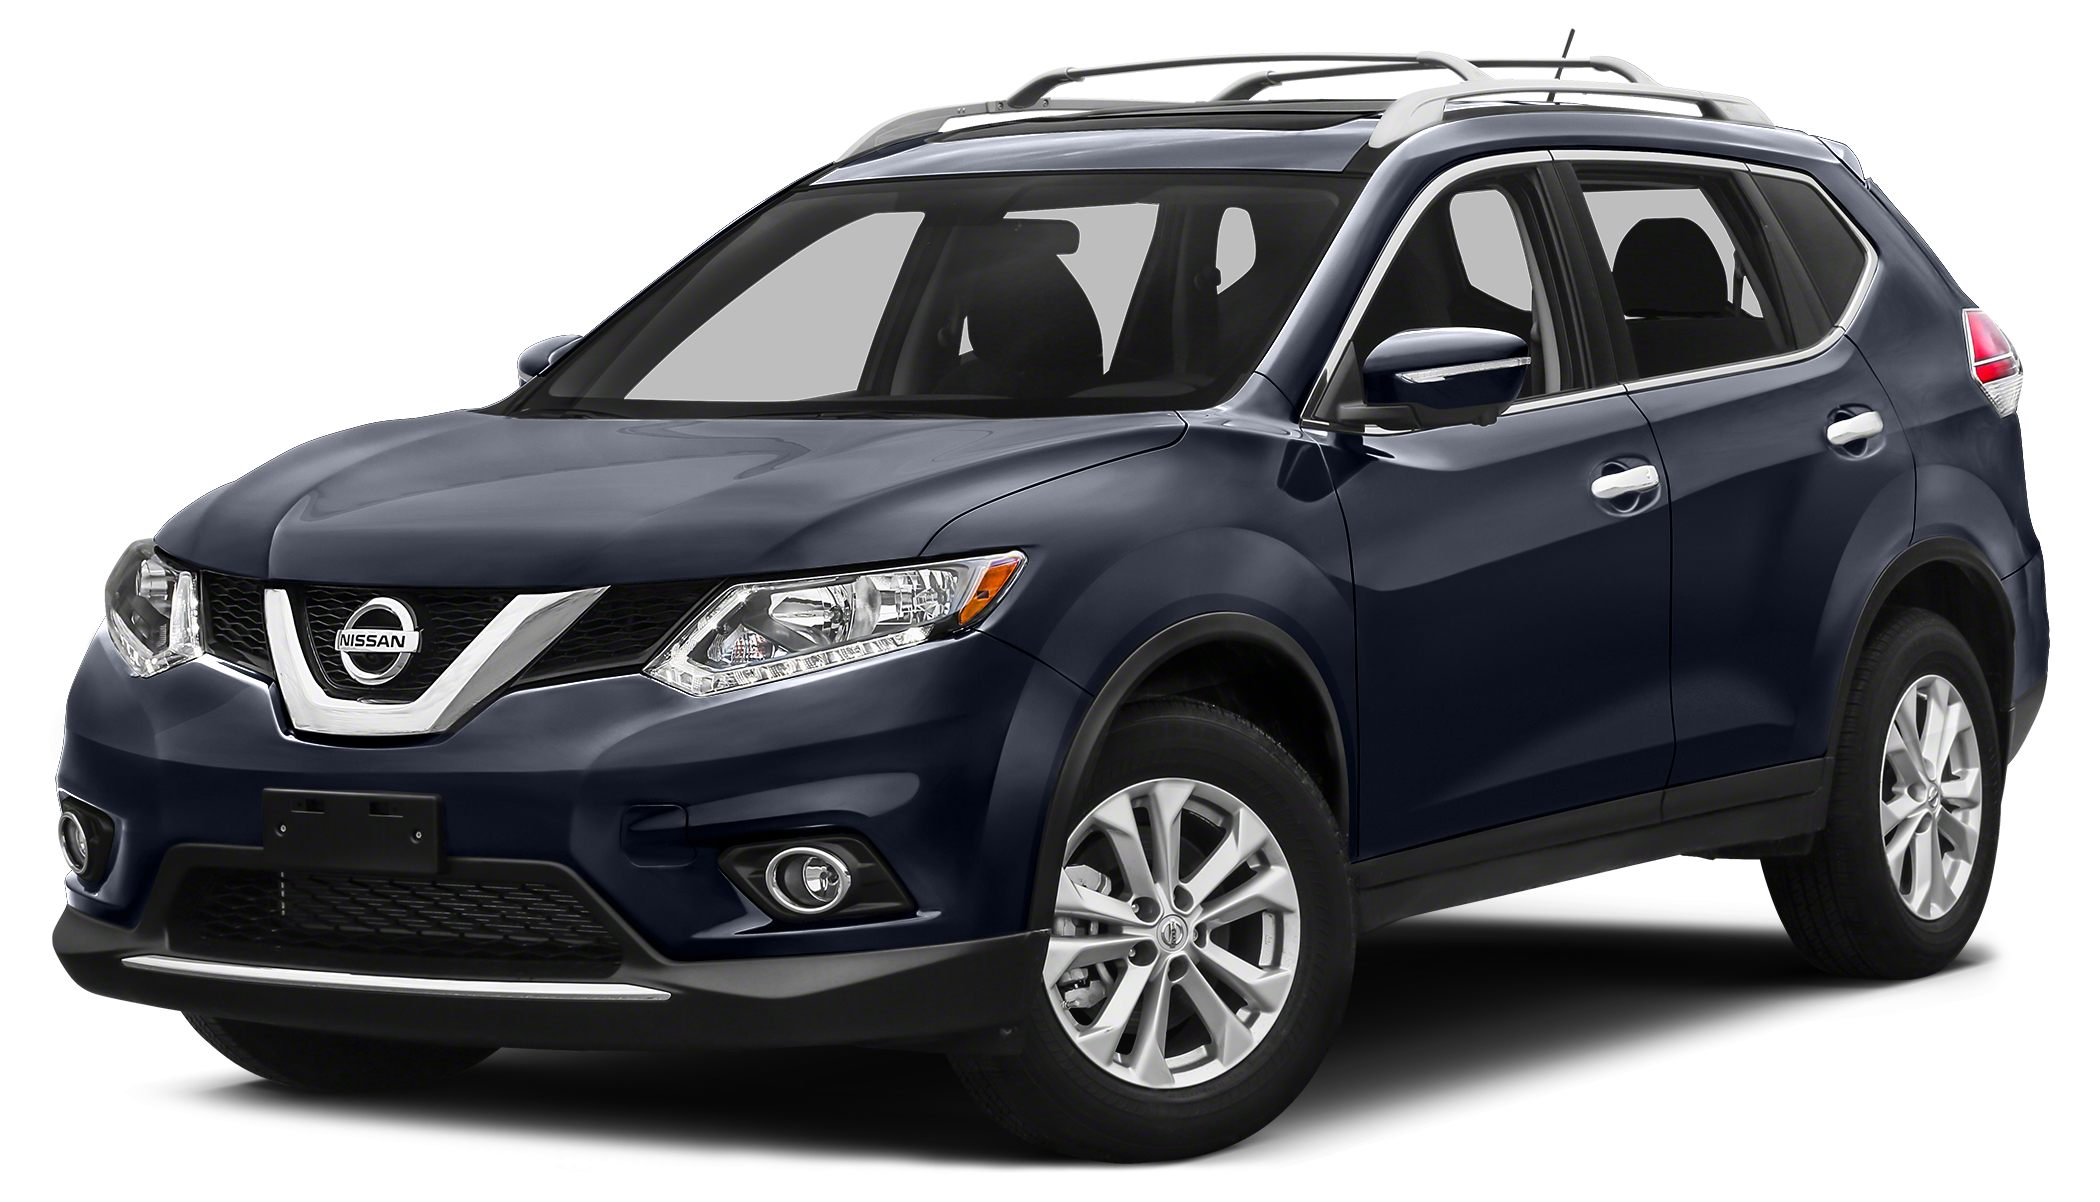 2015 Nissan Rogue S MULLINAX CERTIFIED PRE-OWNED means you get the reassurance of a 110-point insp